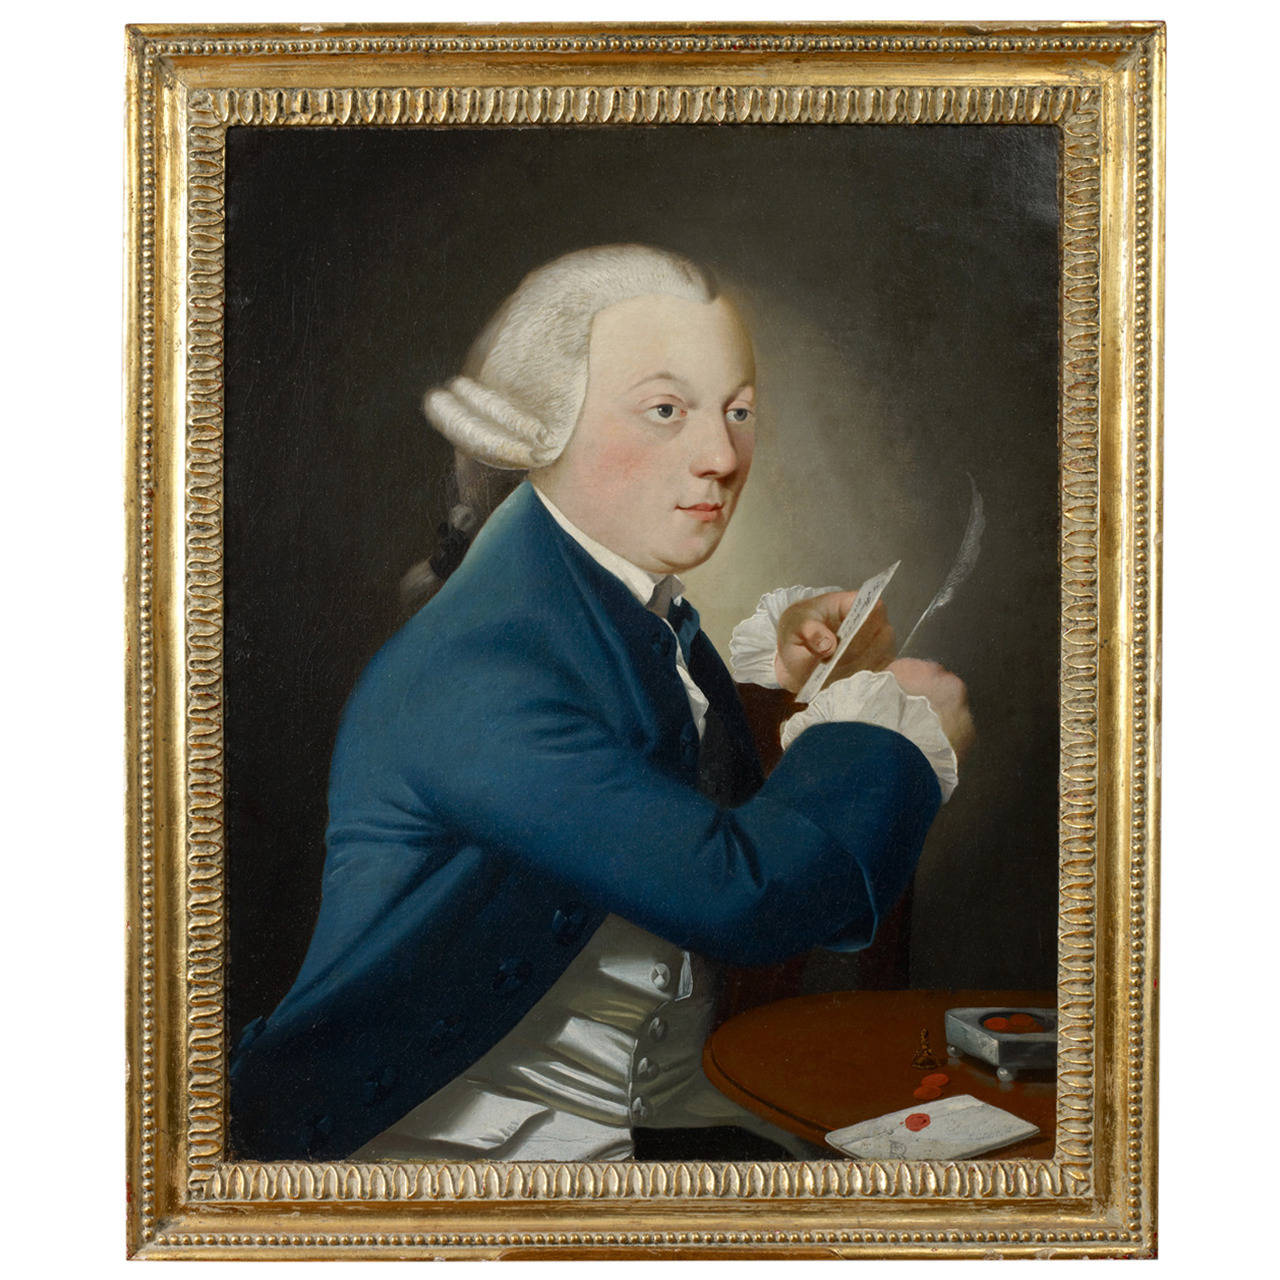 Portrait of a Gentleman Writing a Letter, Oil on Canvas